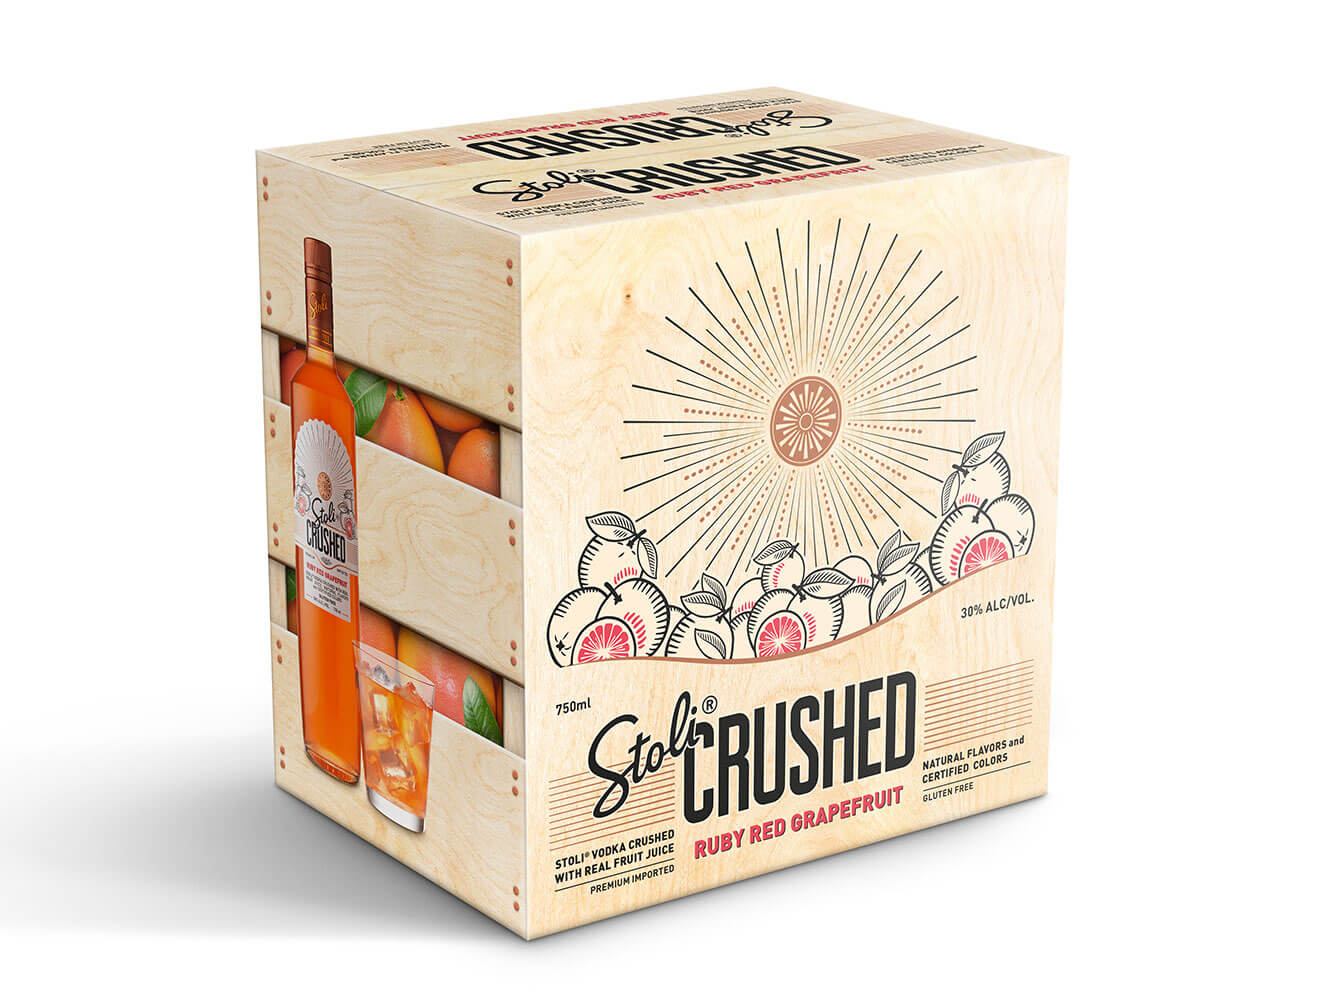 Stoli Crushed Grapefruit Package